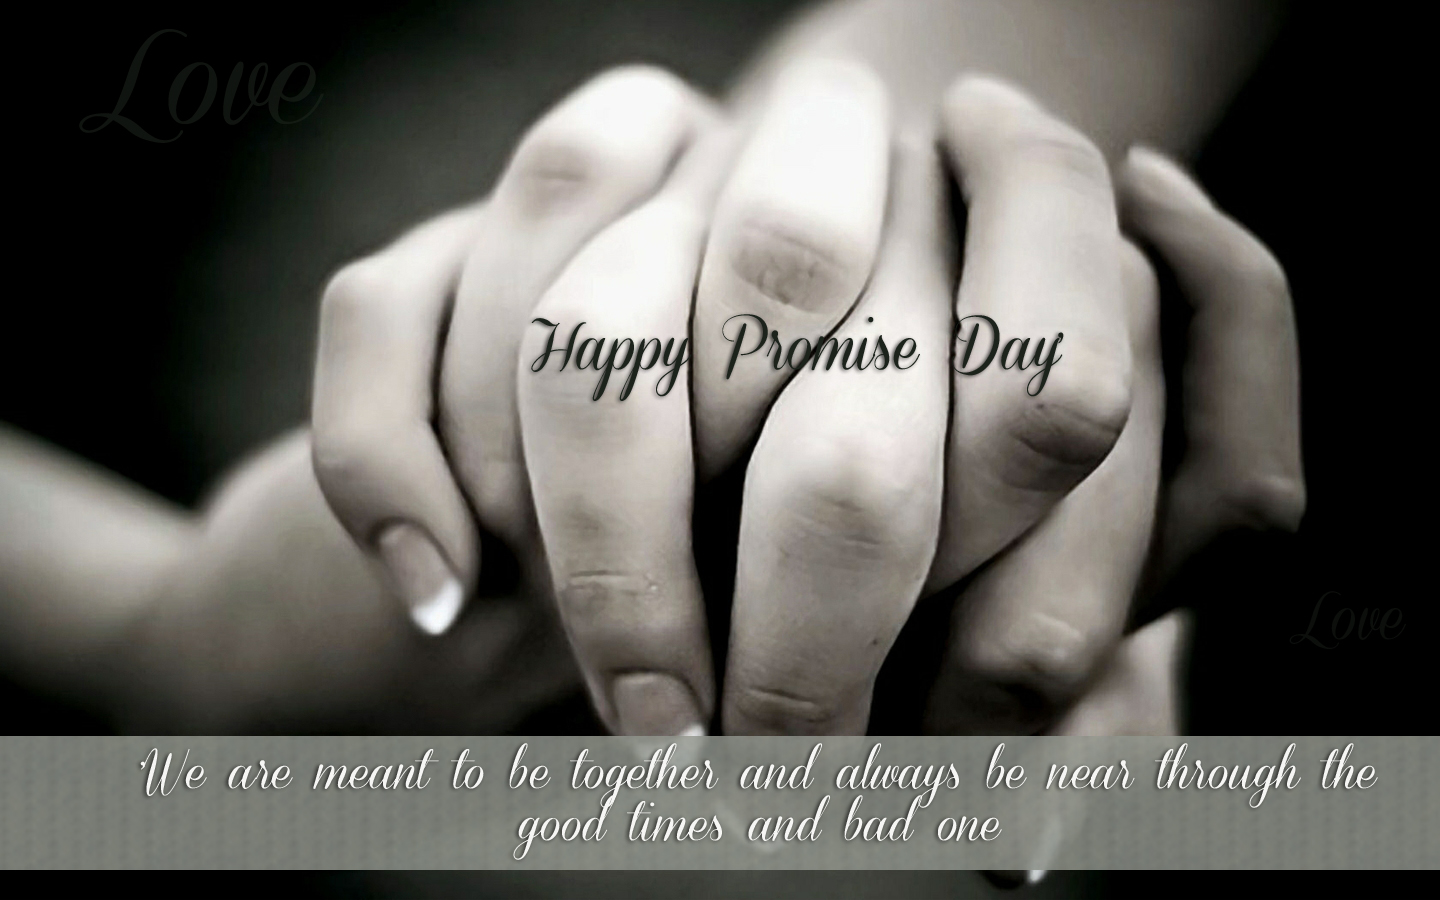 Promise Day 2018 HD Wallpaper Free Download